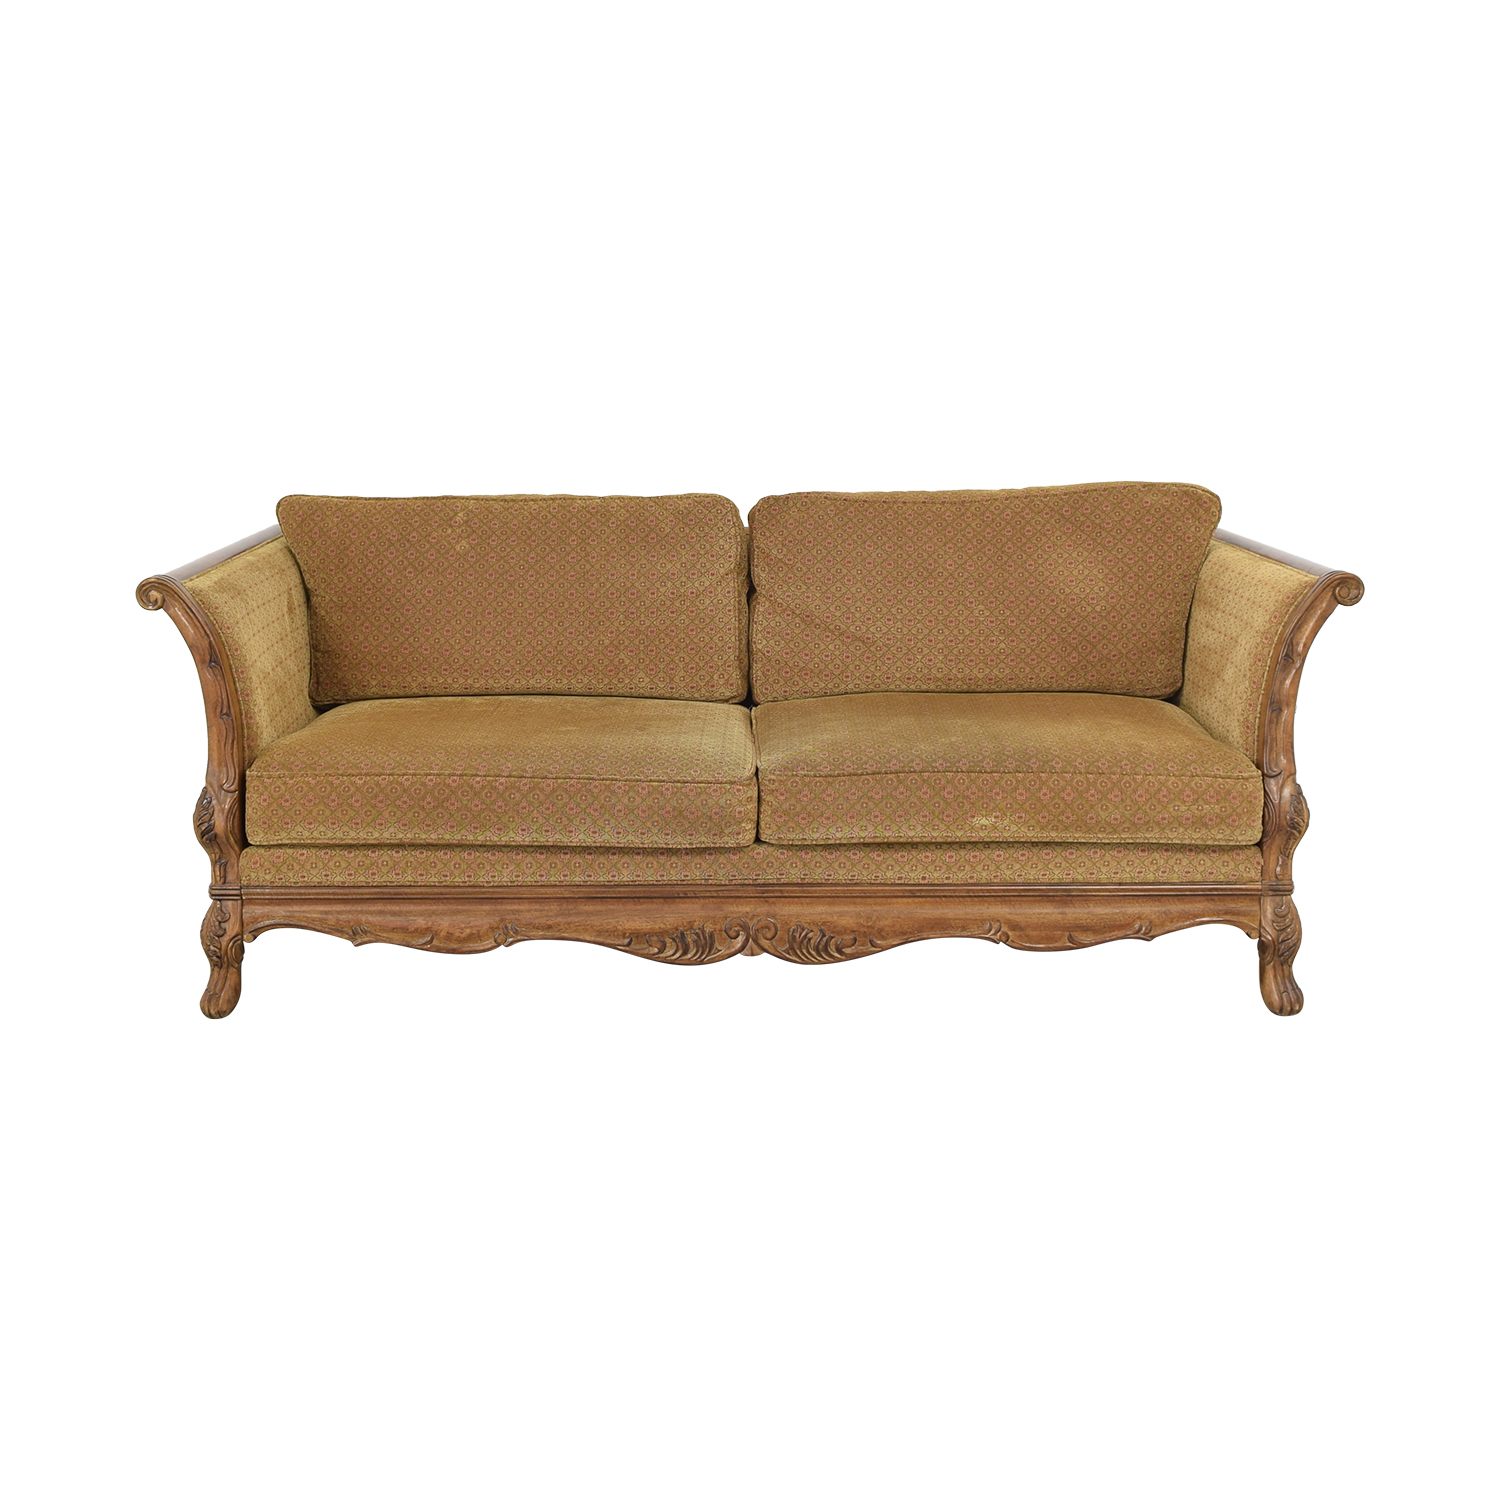 Bernhardt Bernhardt Traditional Sofa for sale